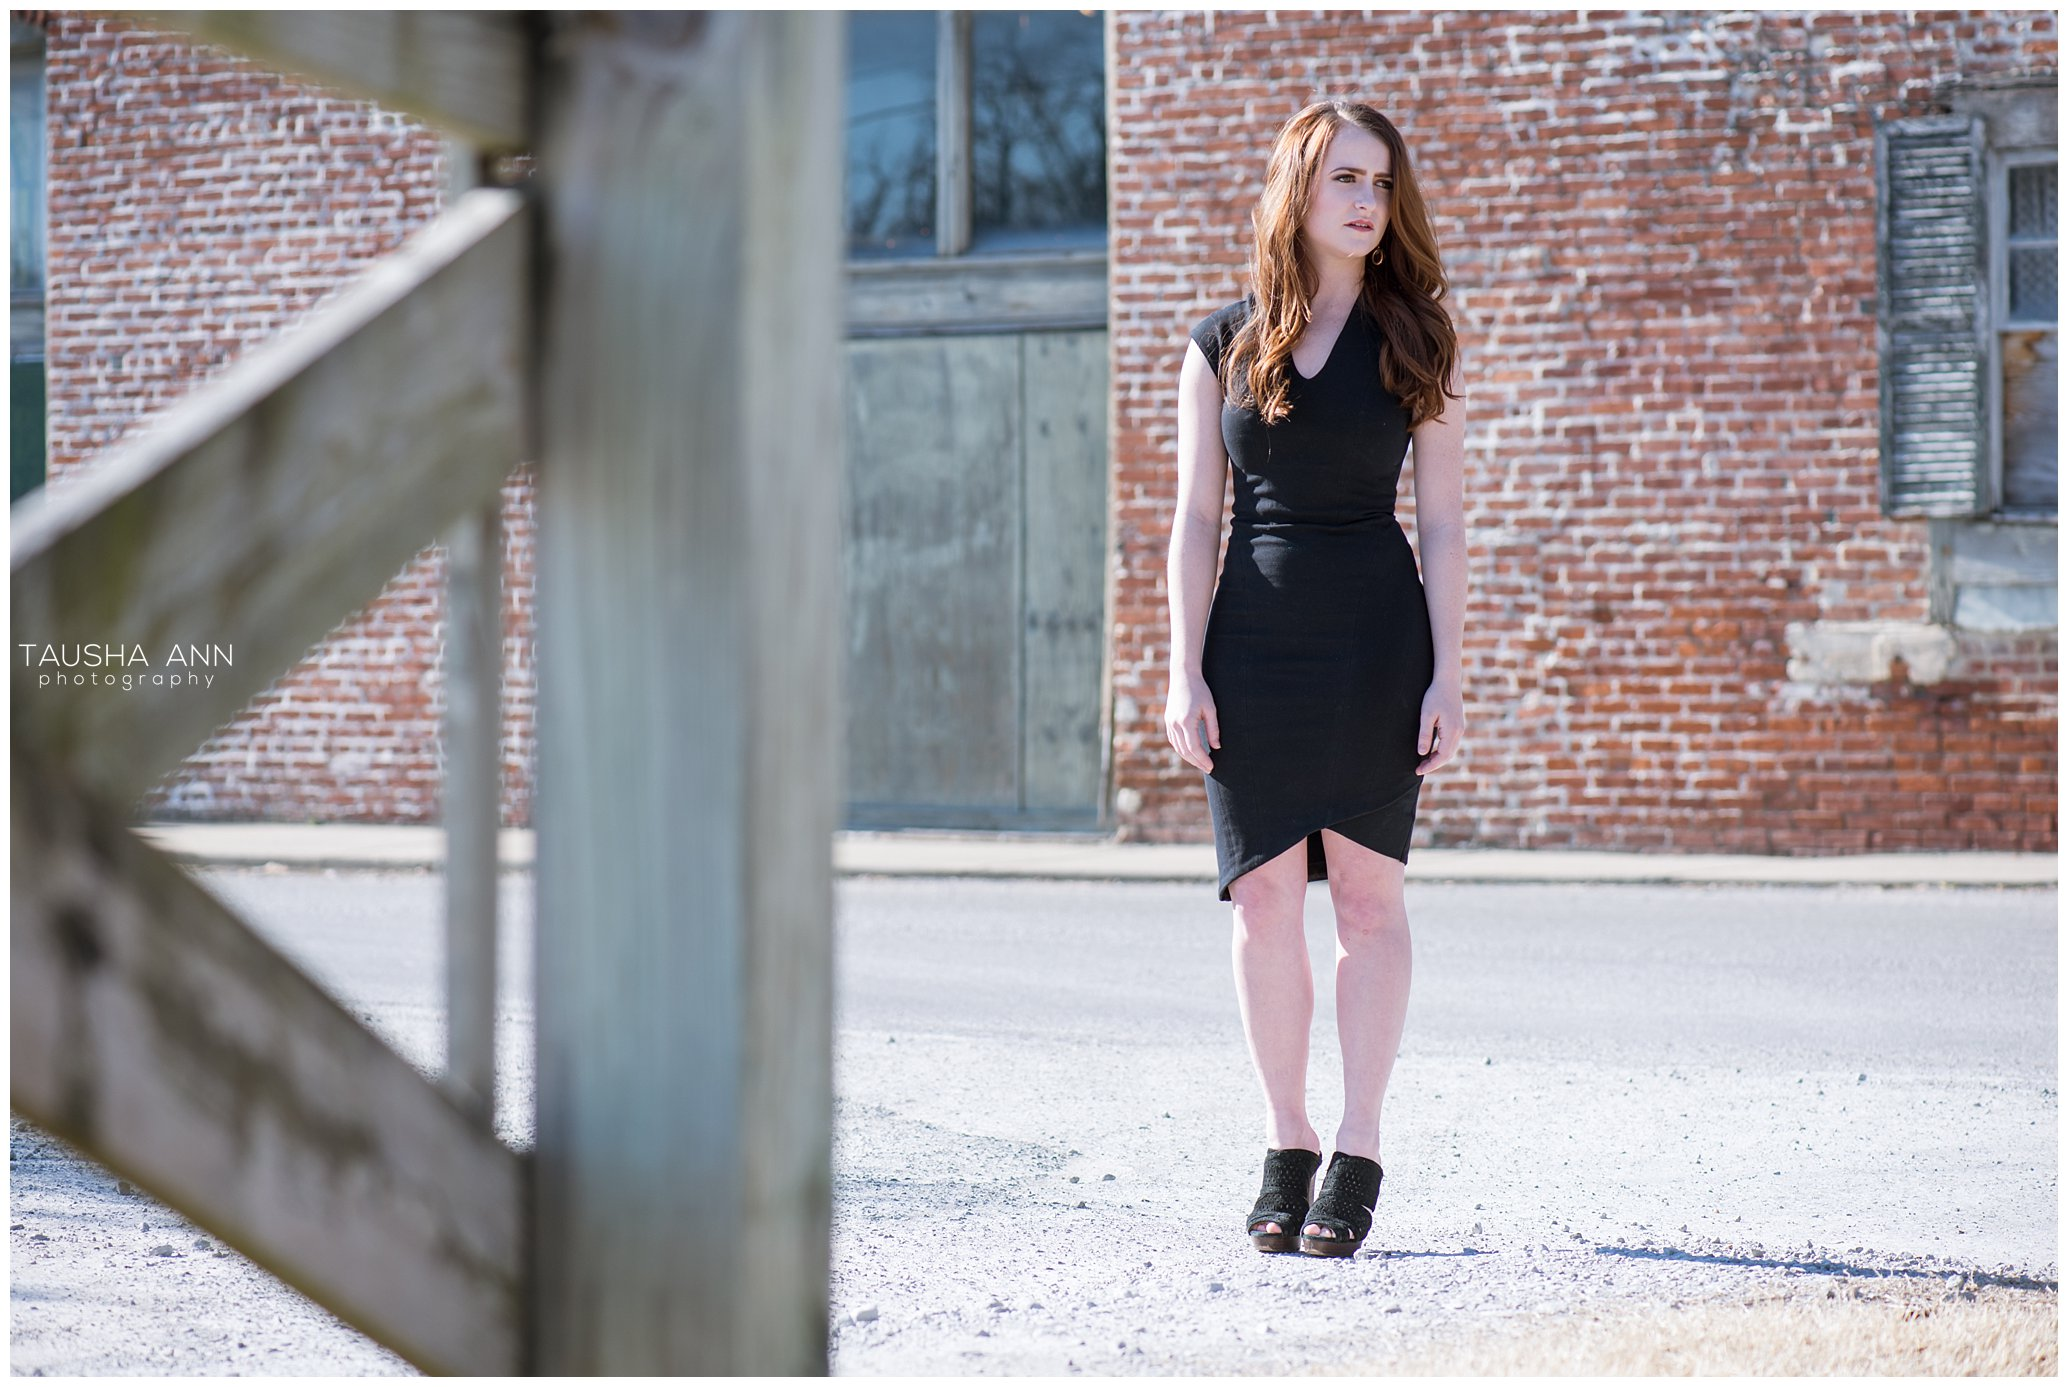 Shannon_Grace_Nashville_TN_FRanklin_Model_Photography_Little_Black_Dress_Downtown.jpg